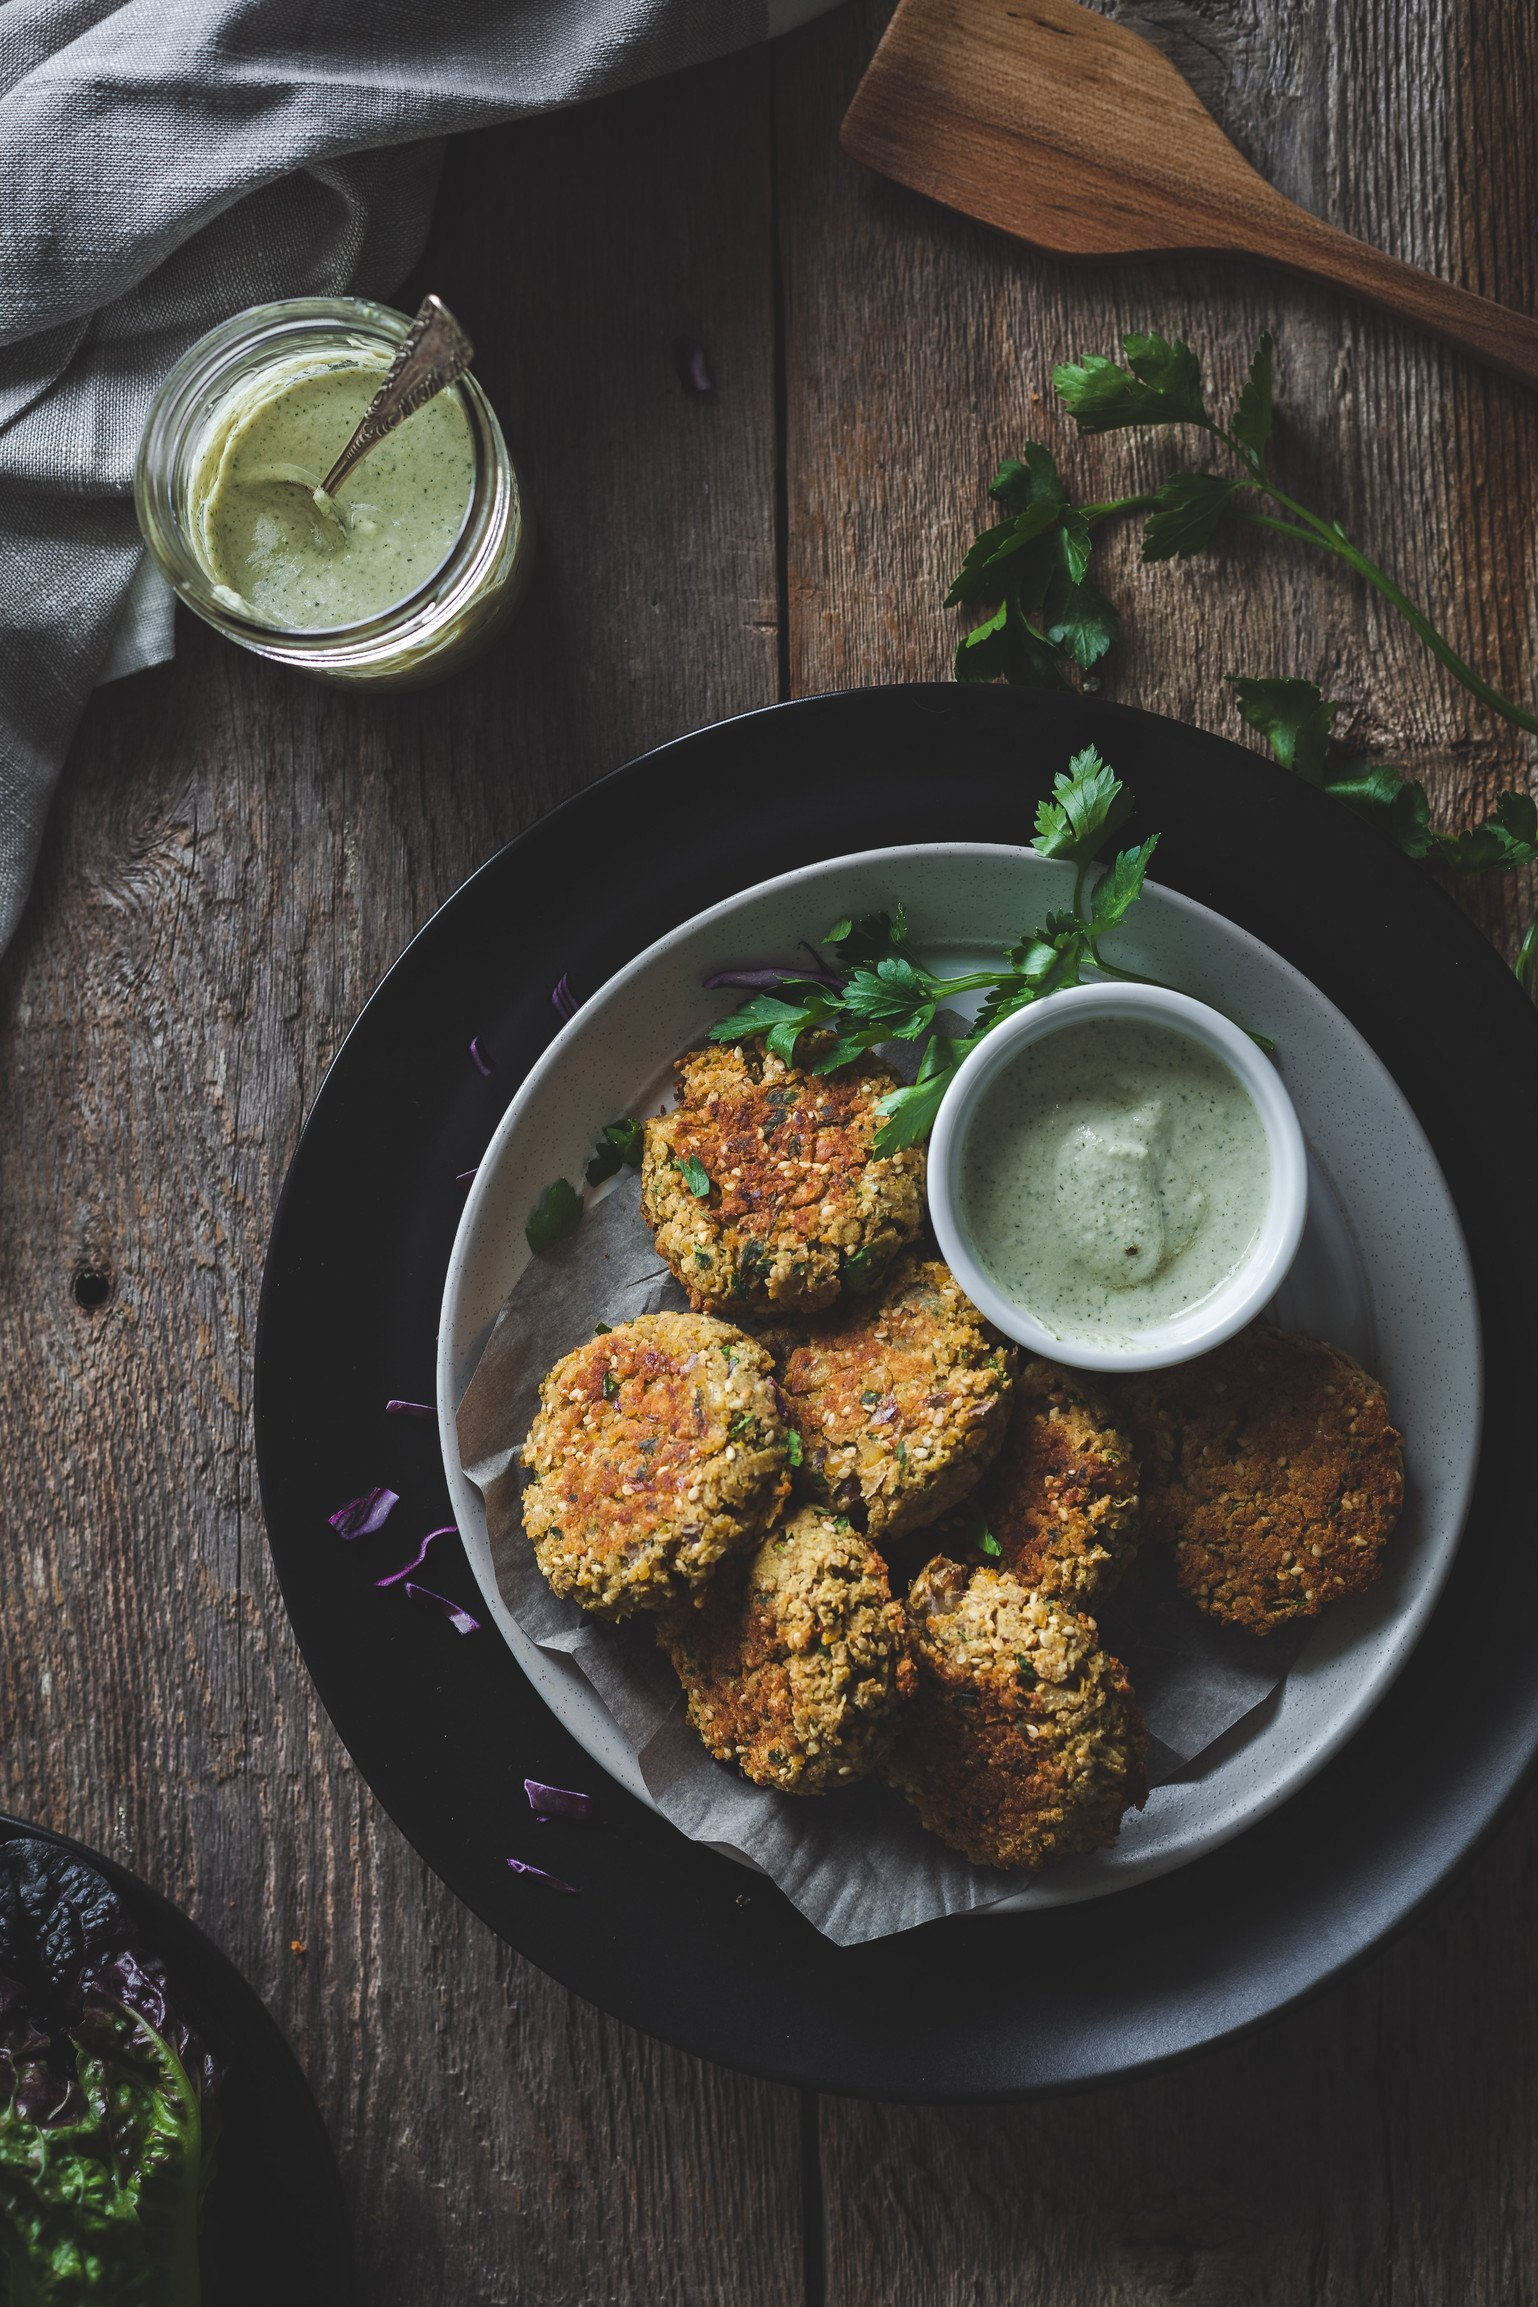 Baked falafels with garlic dill sunflower dip, featured in 65+ nutrient dense real food snack recipes.